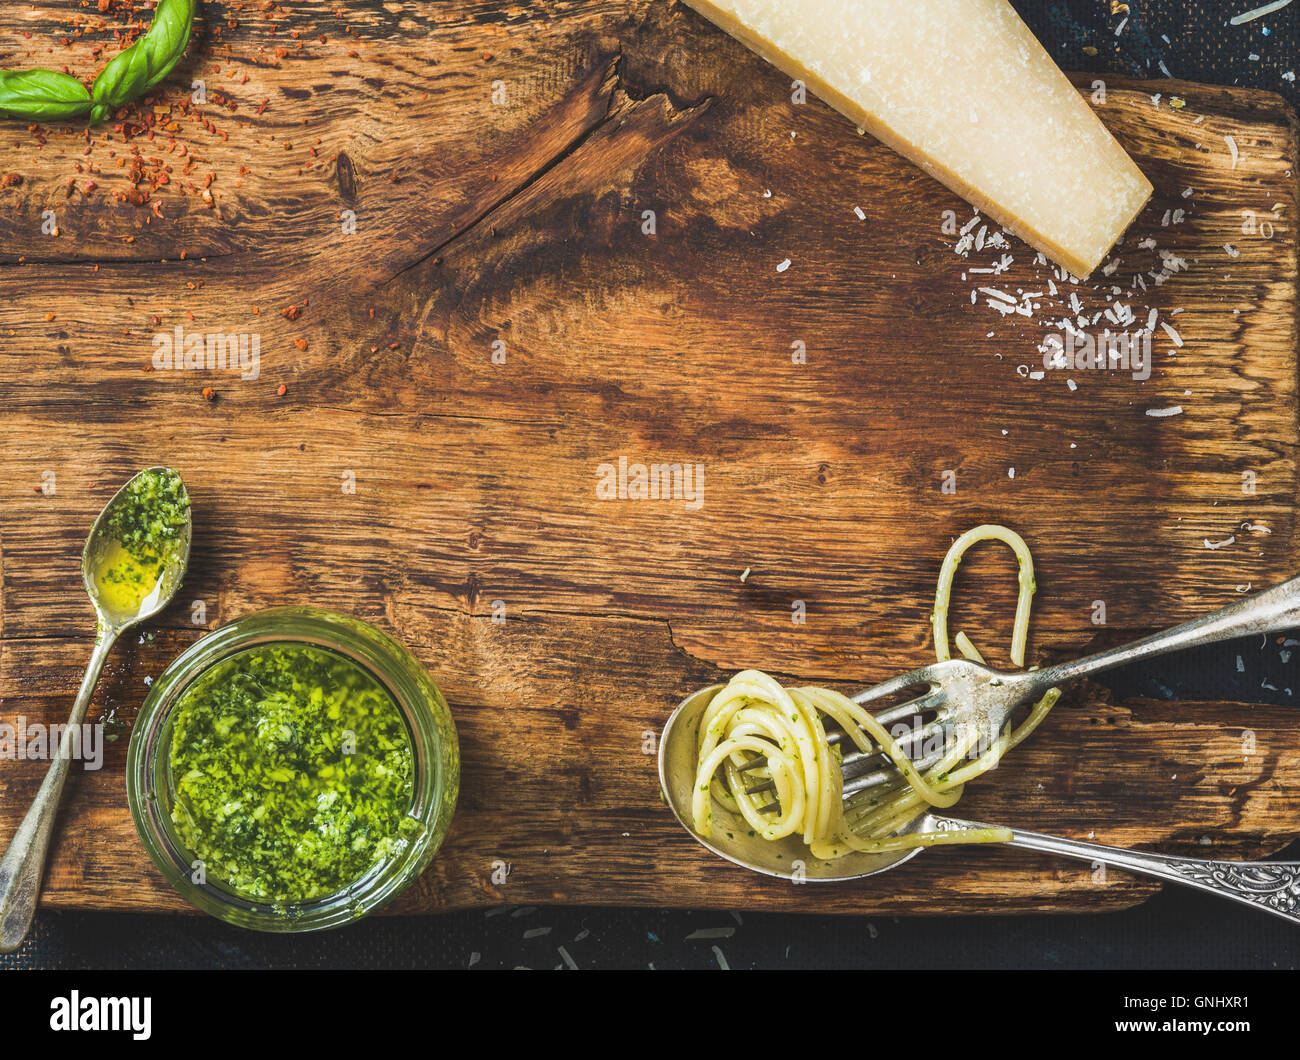 Italian cuisine cooking background. Jar with pesto sauce, spoon and fork with cooked spaghetti, fresh basil leaves - Stock Image